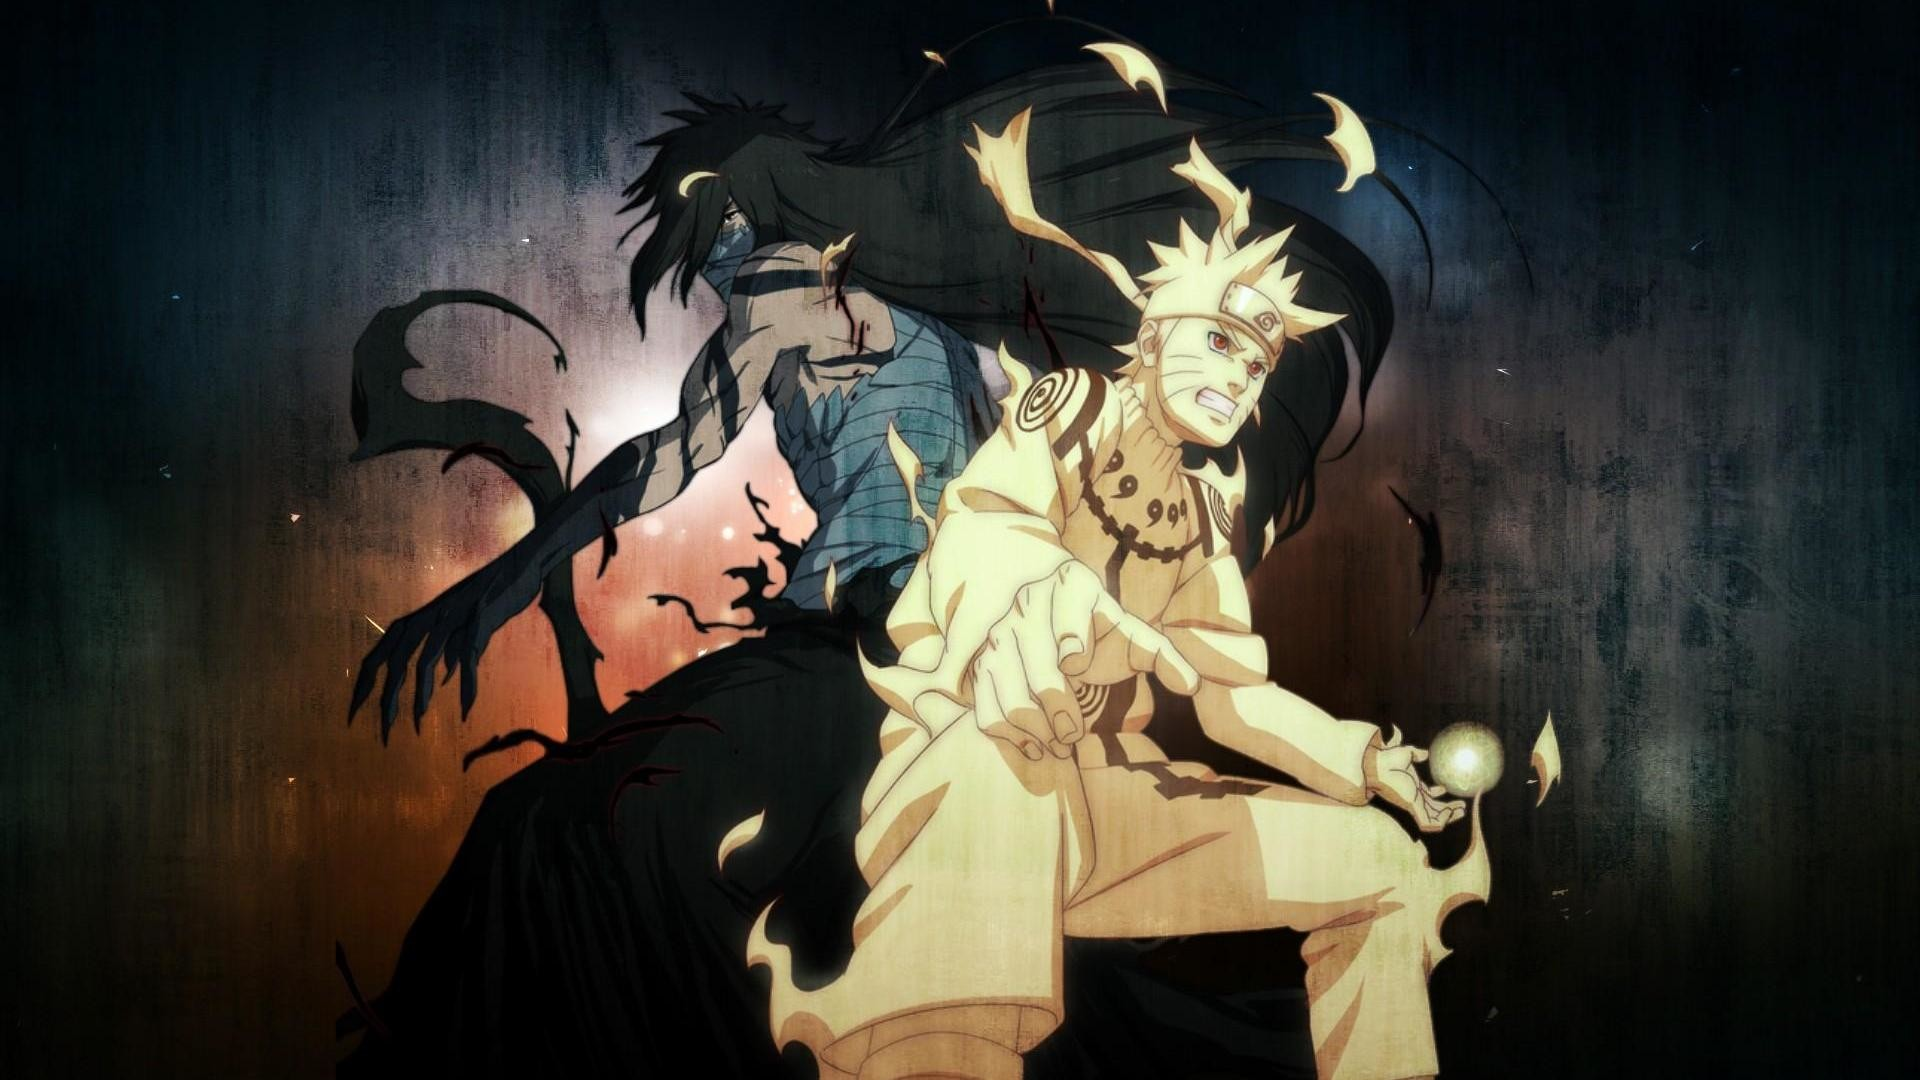 Naruto 1080p wallpaper 70 images - Anime full hd download ...